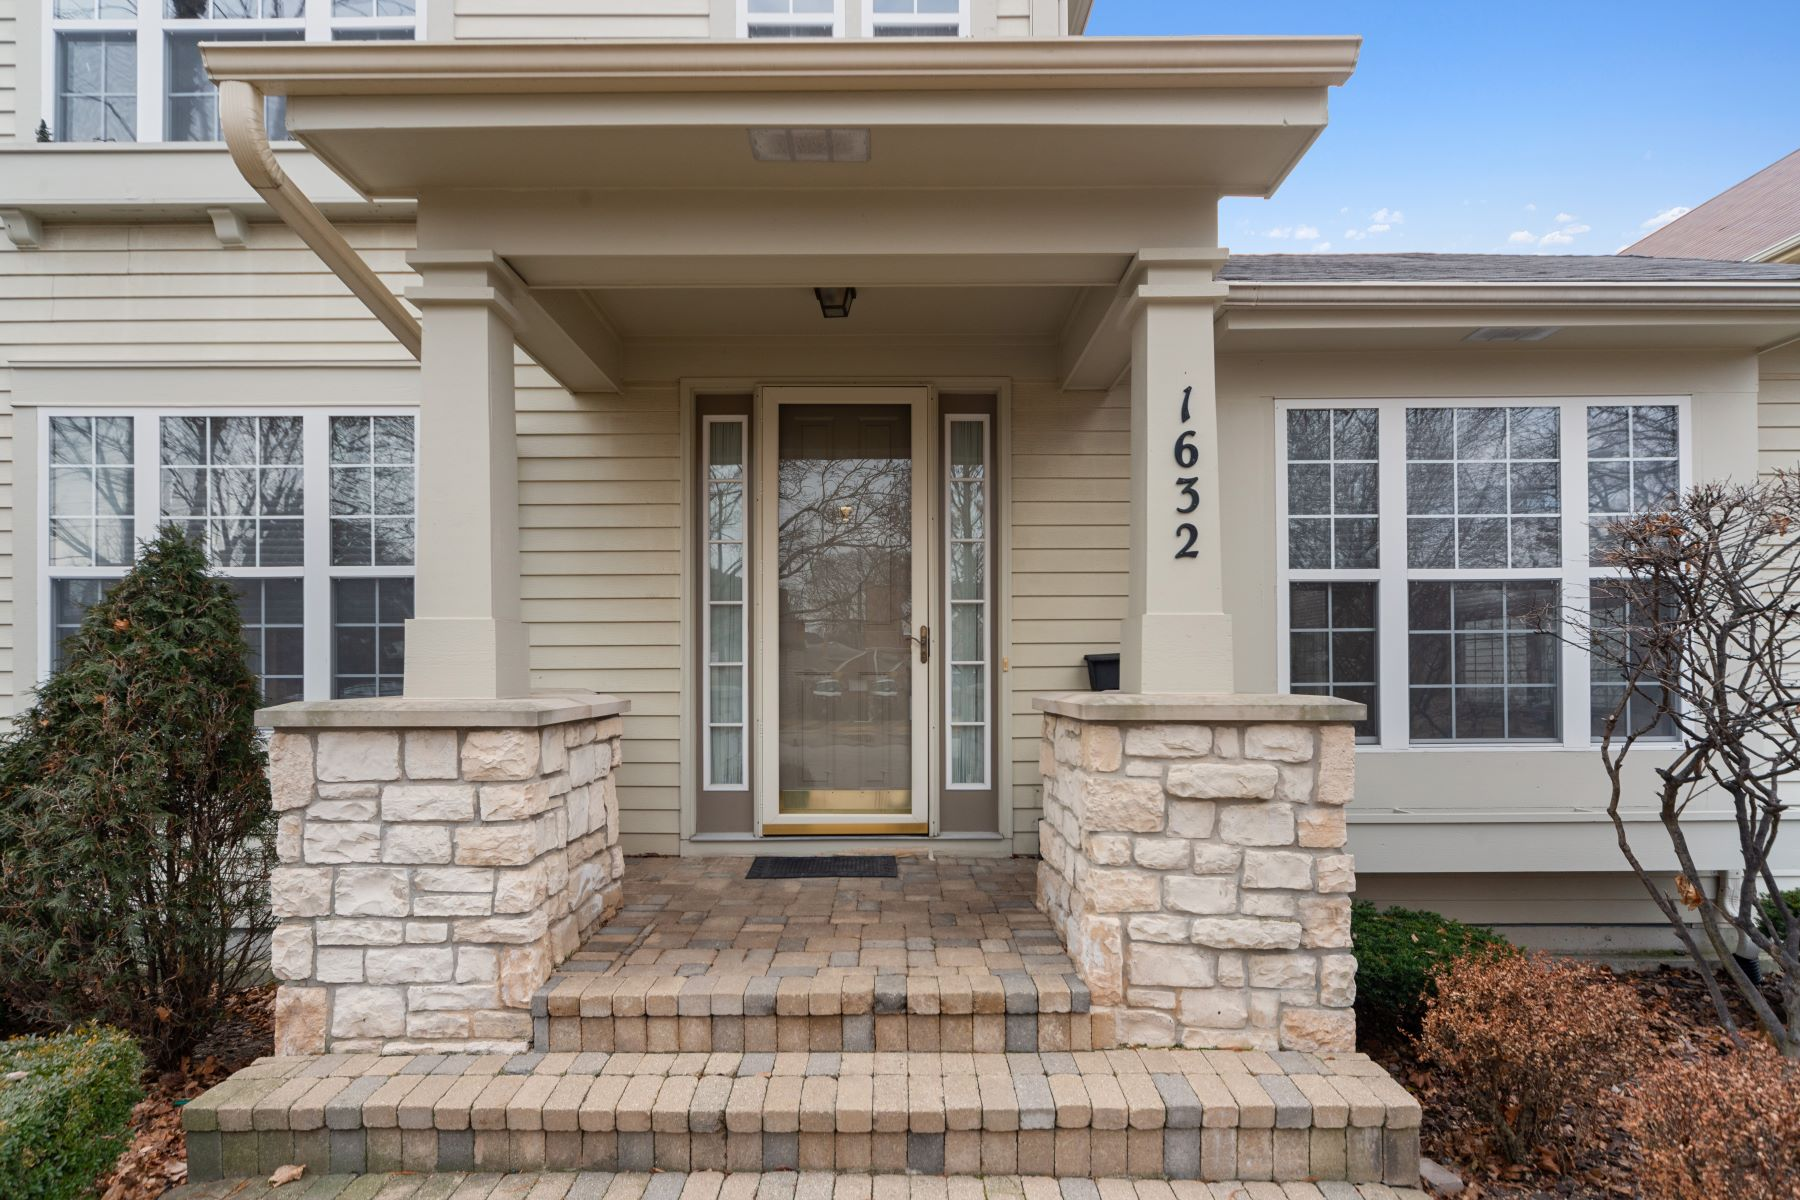 Single Family Homes for Active at Wonderful One Owner Park Ridge Home 1632 Canfield Road Park Ridge, Illinois 60068 United States